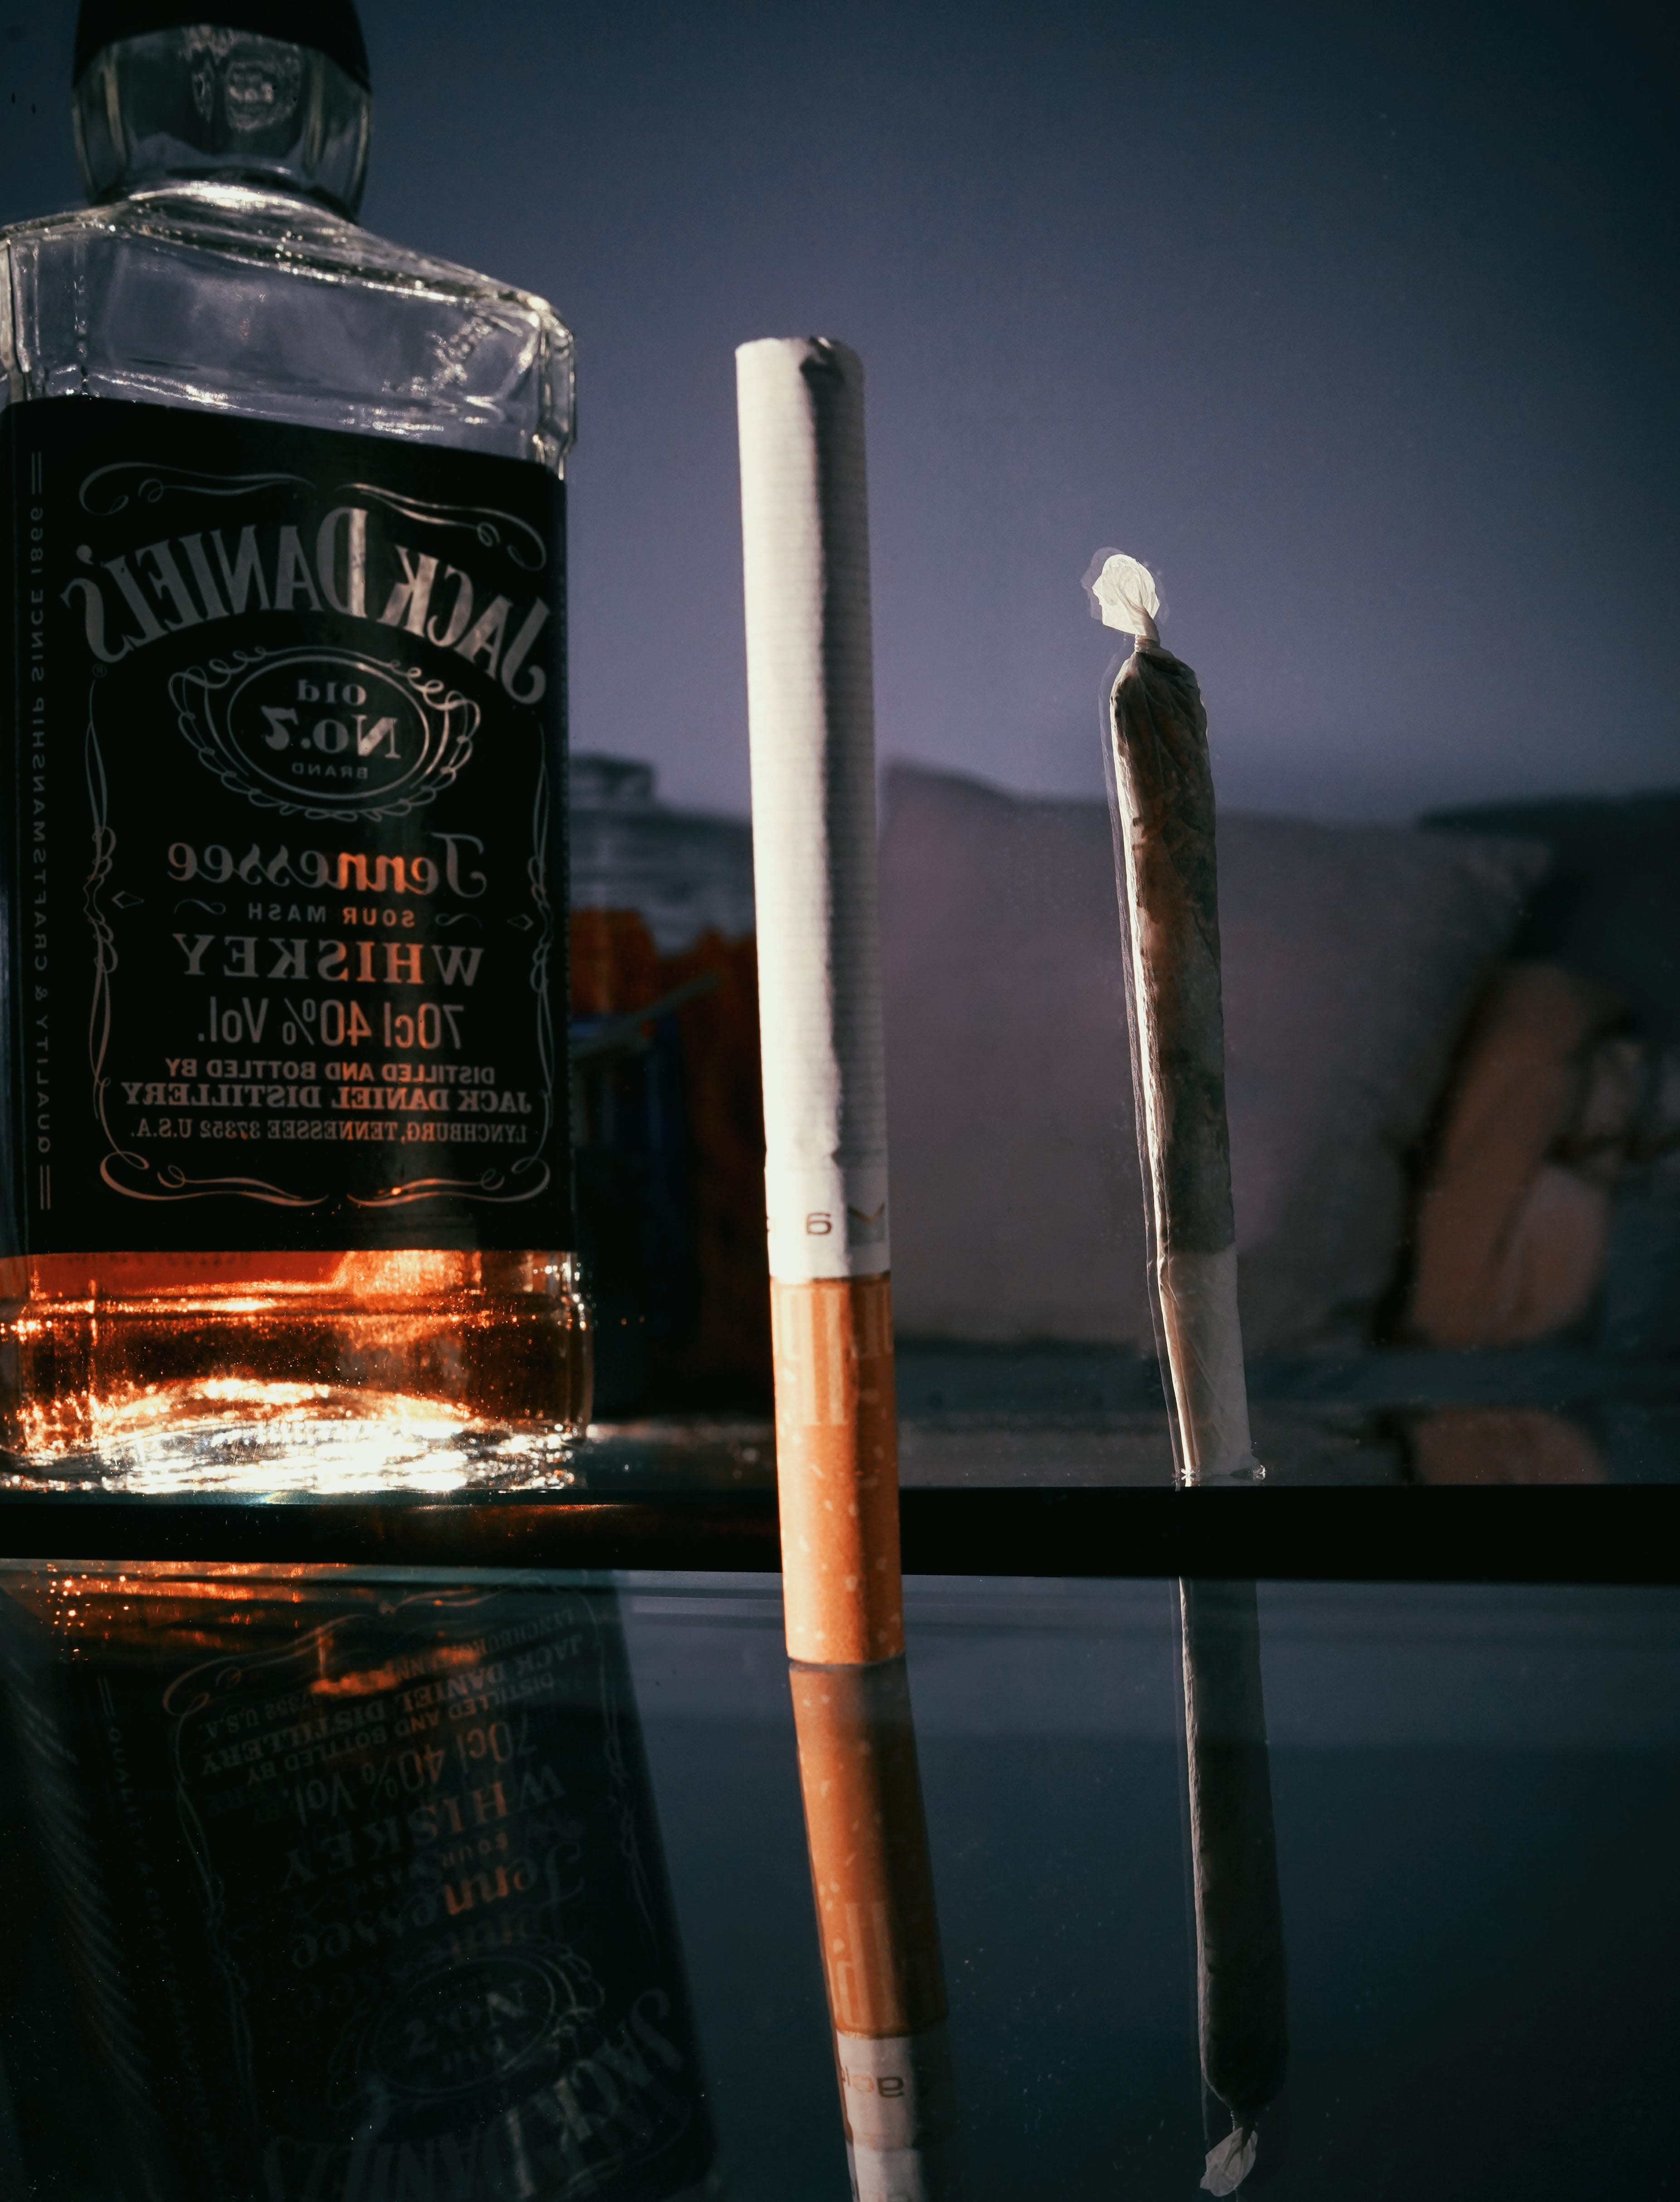 Bottle of Jack Daniels whiskey next to a cigarette and a joint; image by Marc Schaefer, via Unsplash.com.